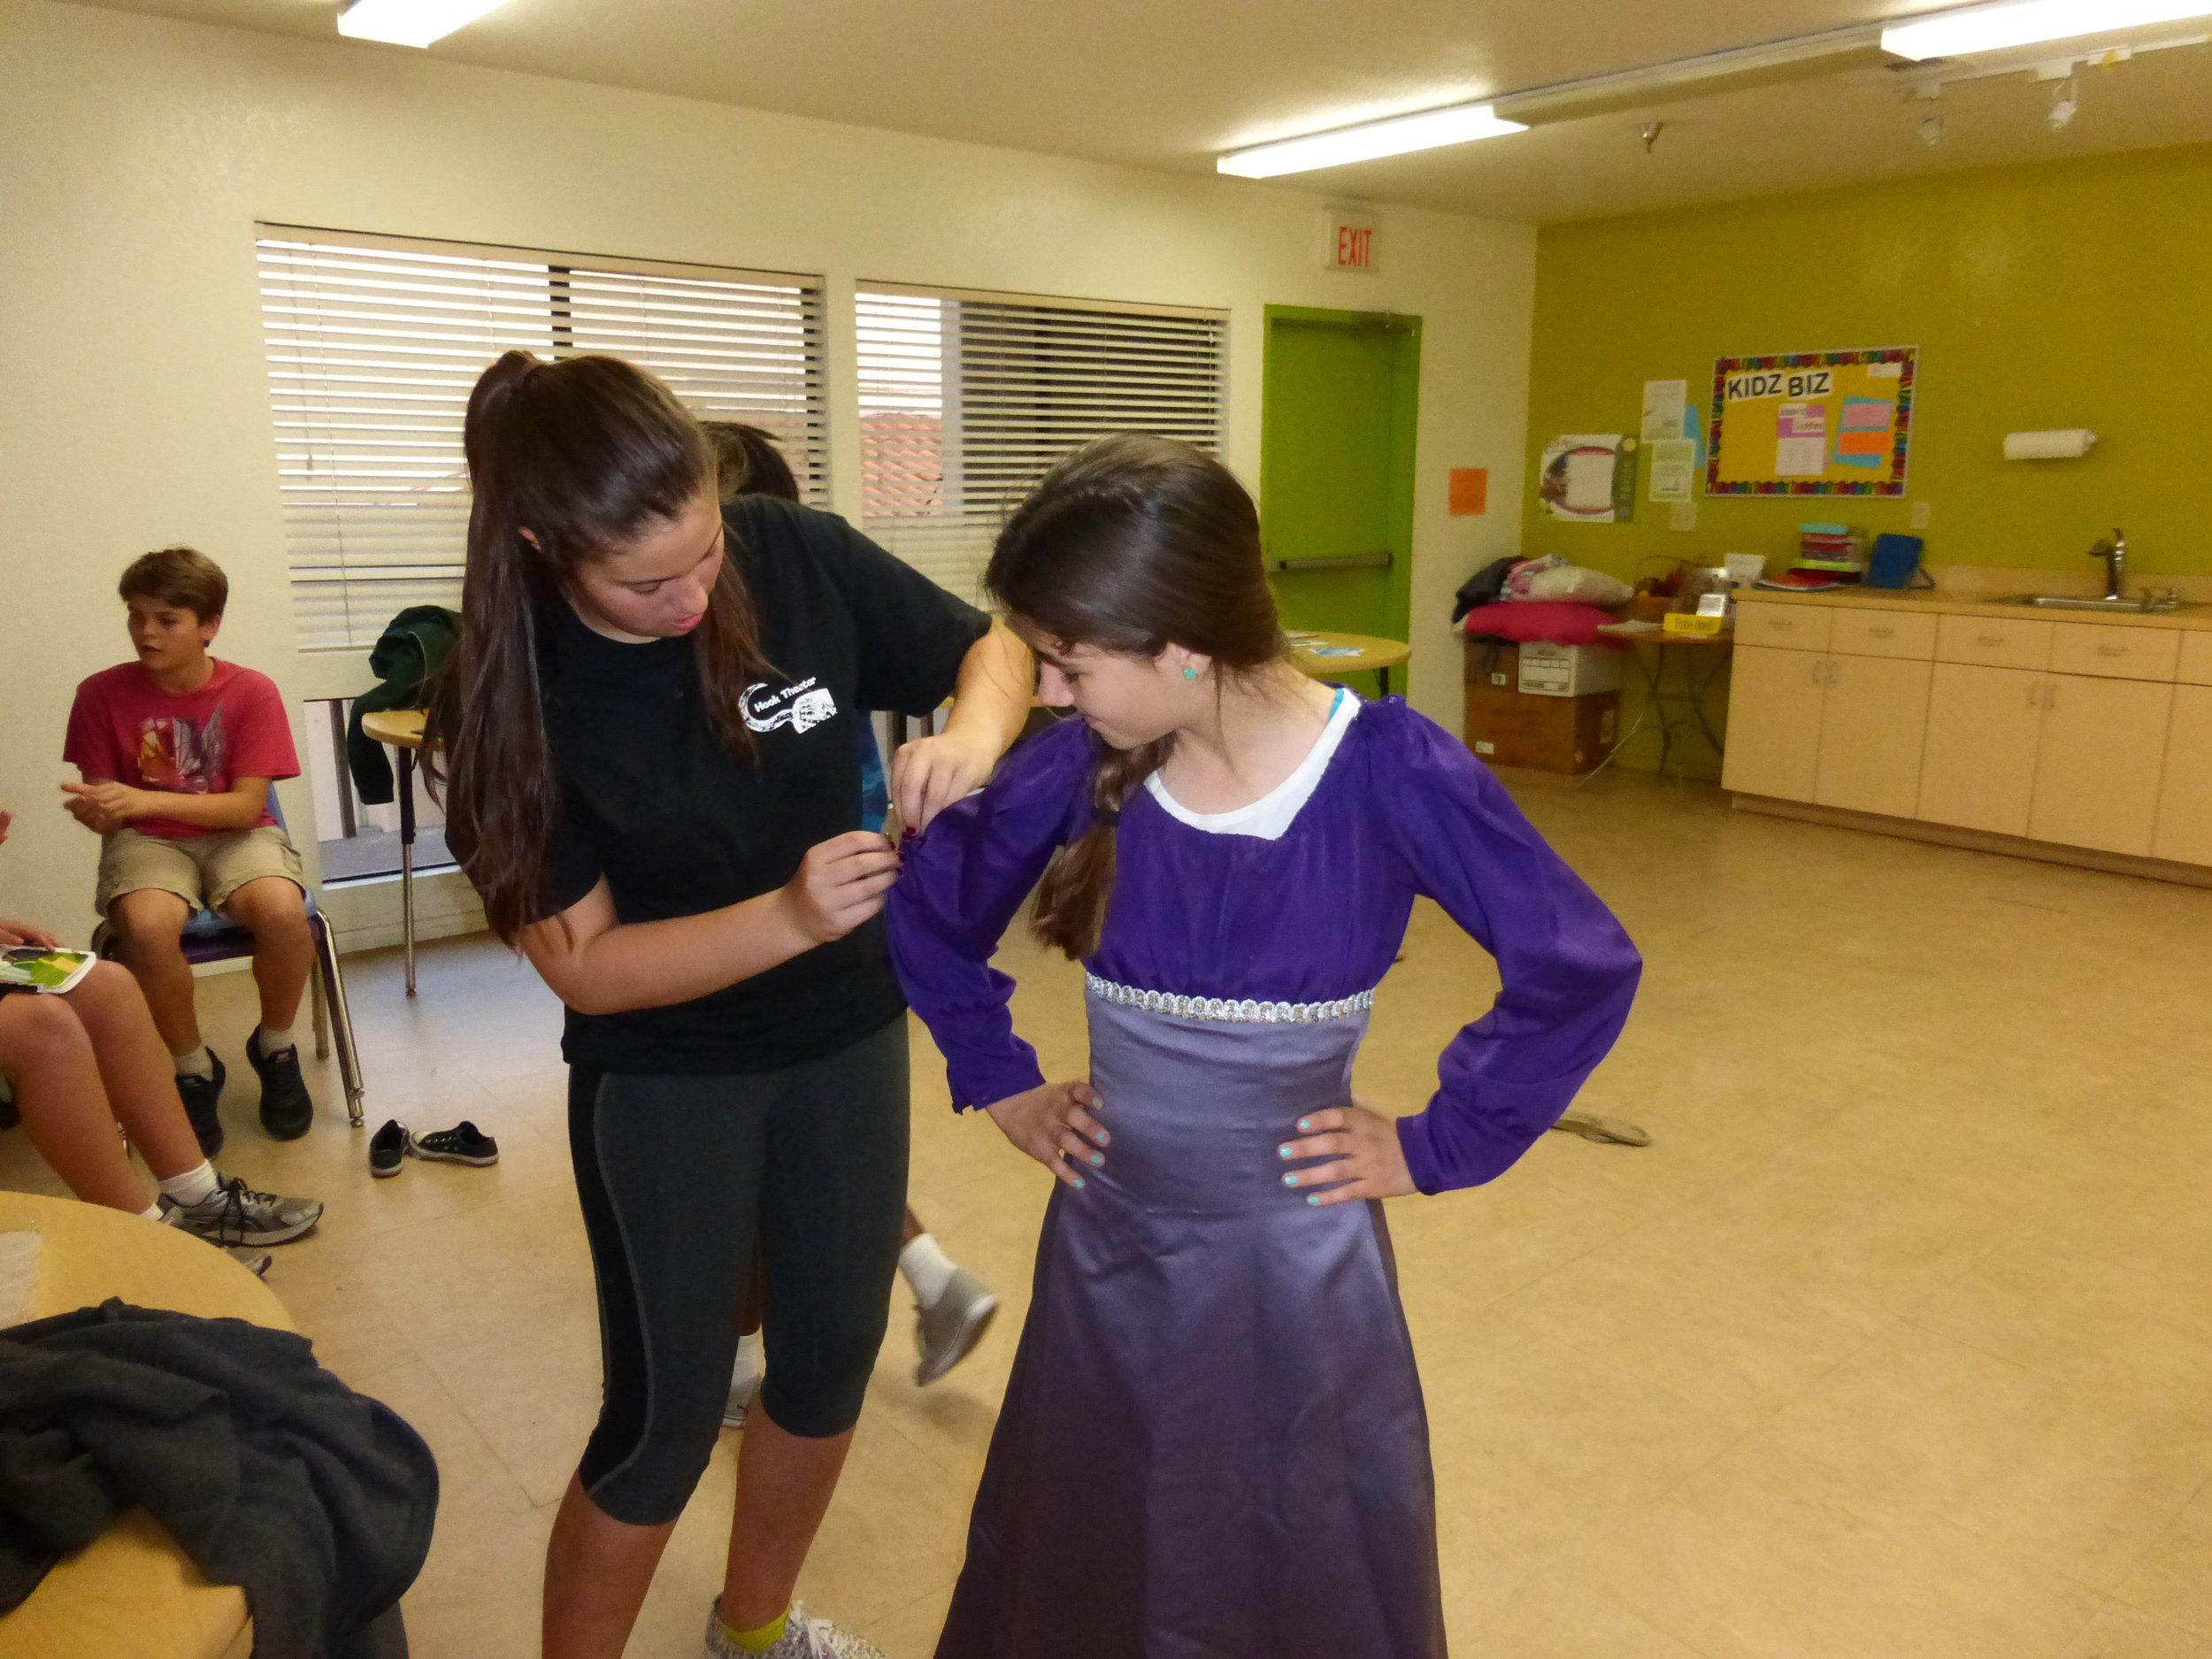 from thrift store to stage   learn how to modify clothing found in thrift stores into a variety of costumes